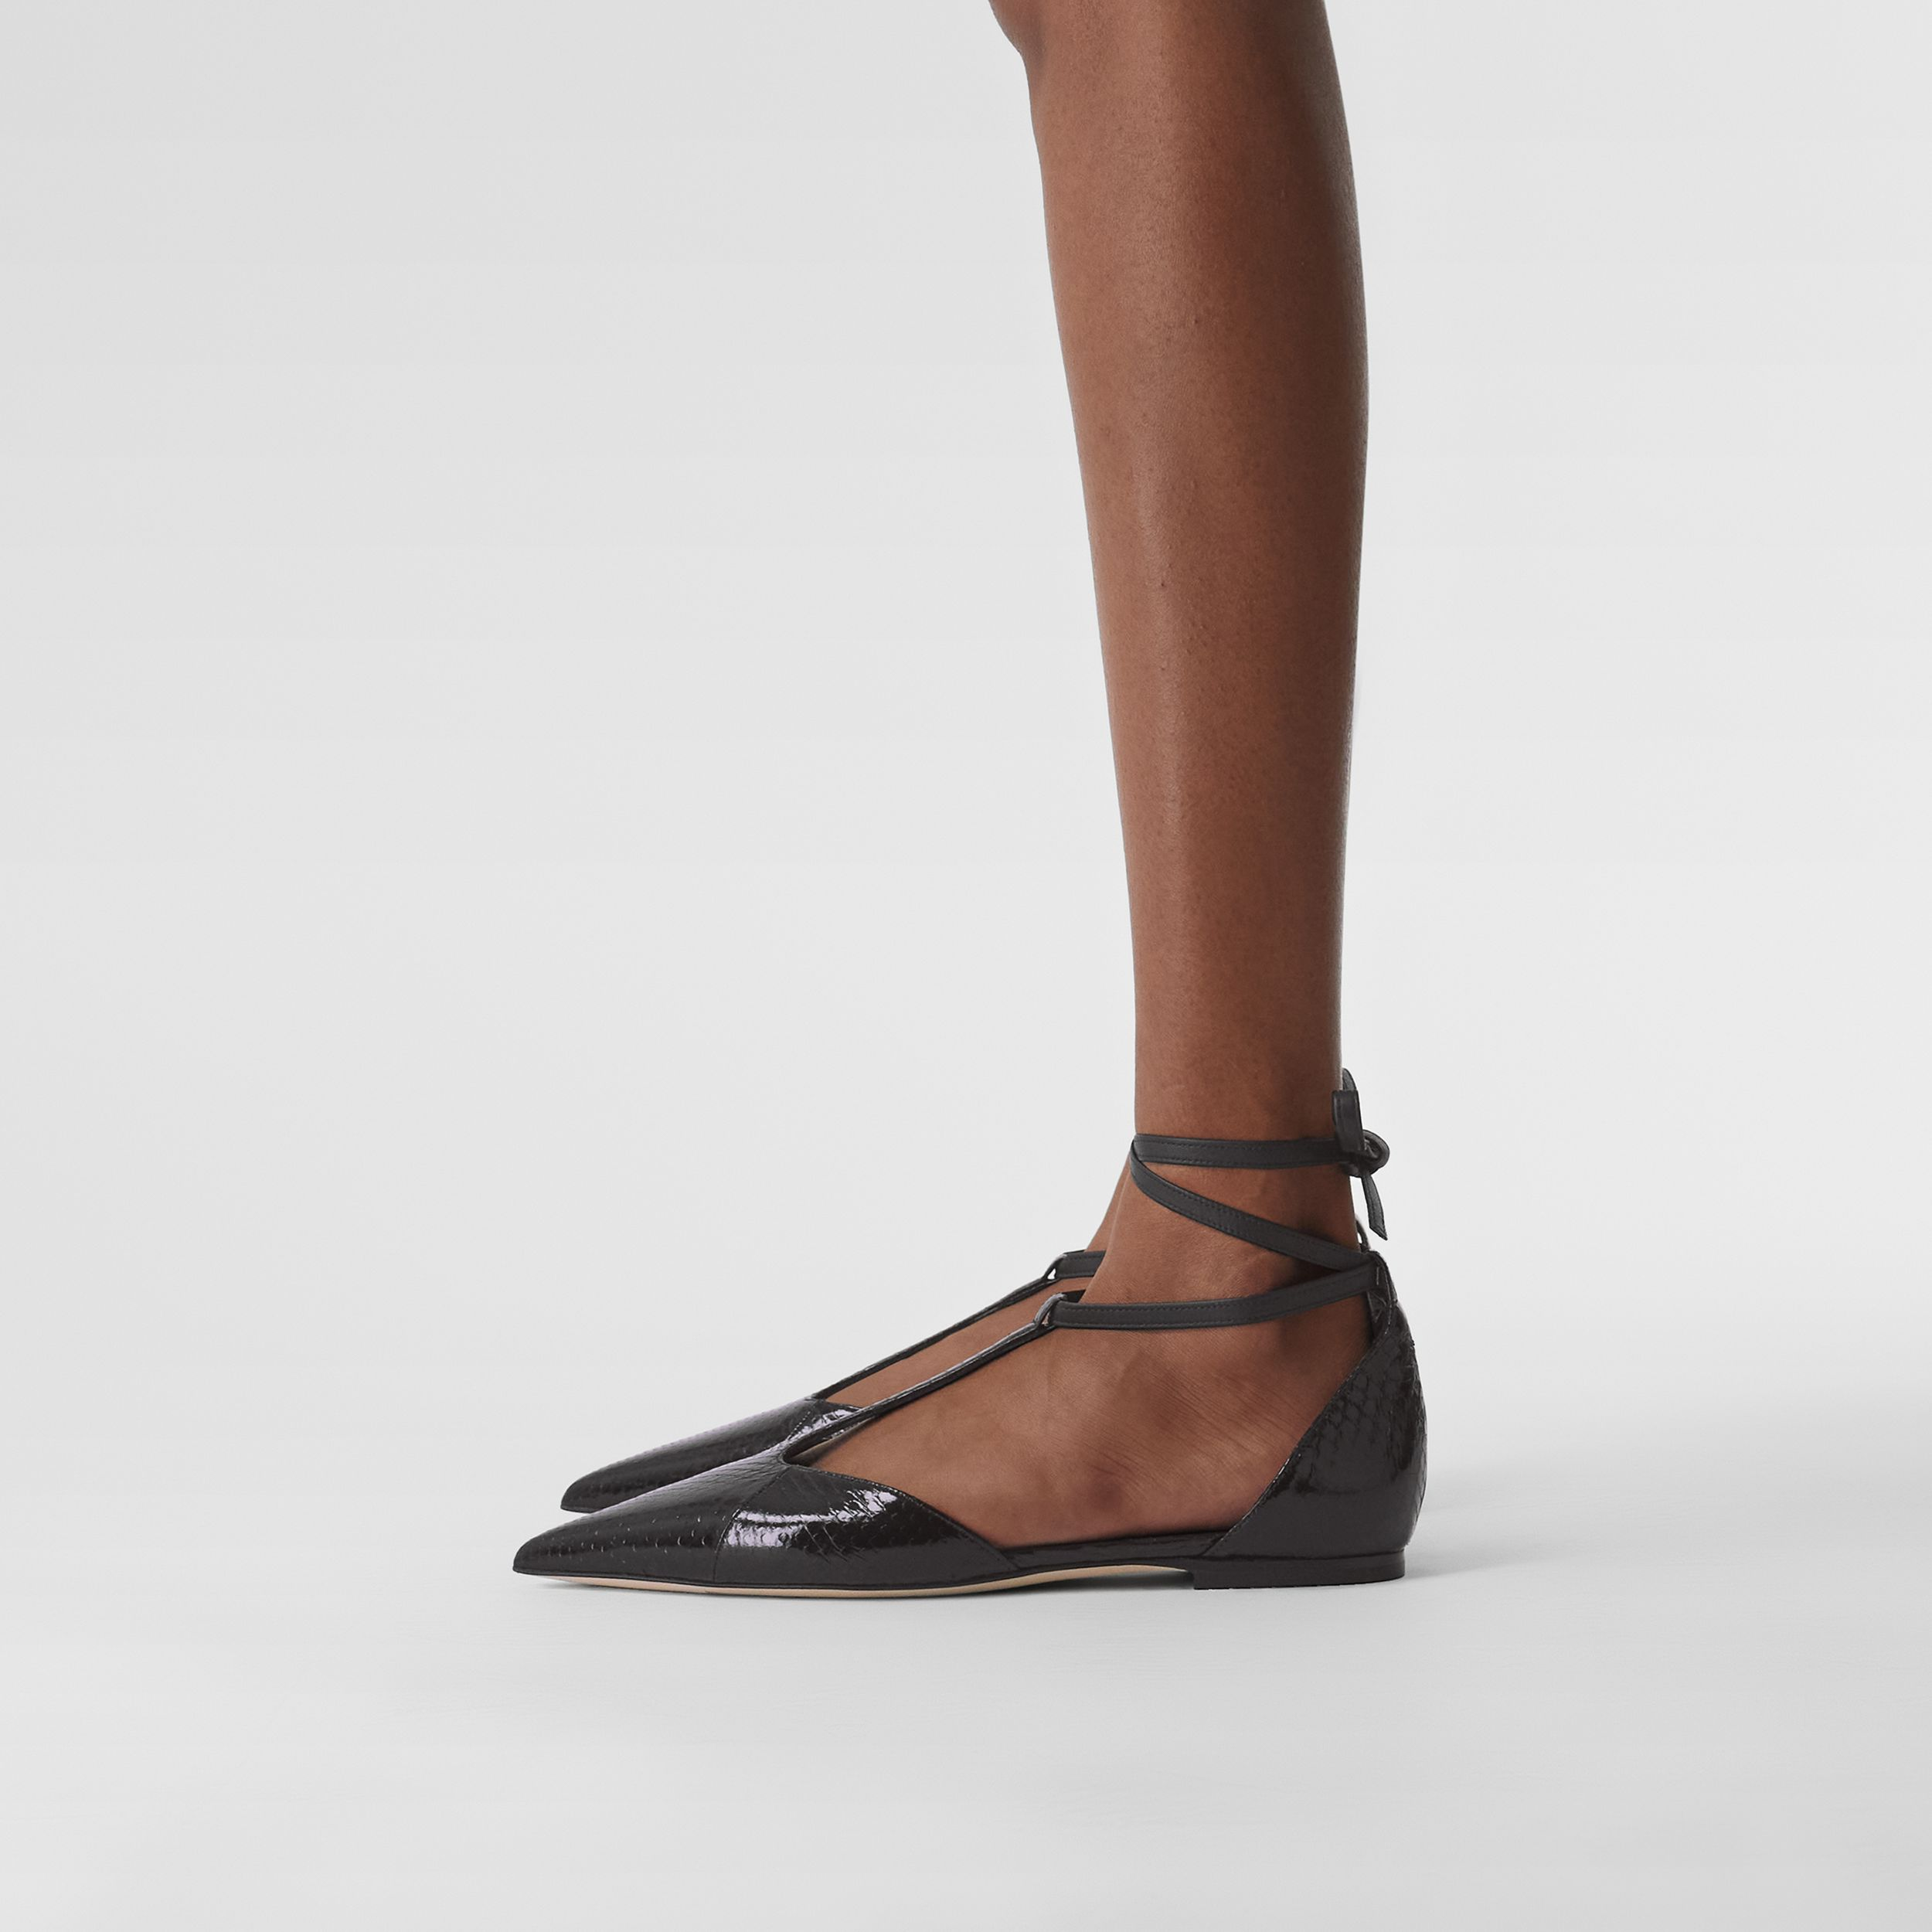 Snakeskin and Leather Point-toe Ballerinas in Black - Women | Burberry - 3